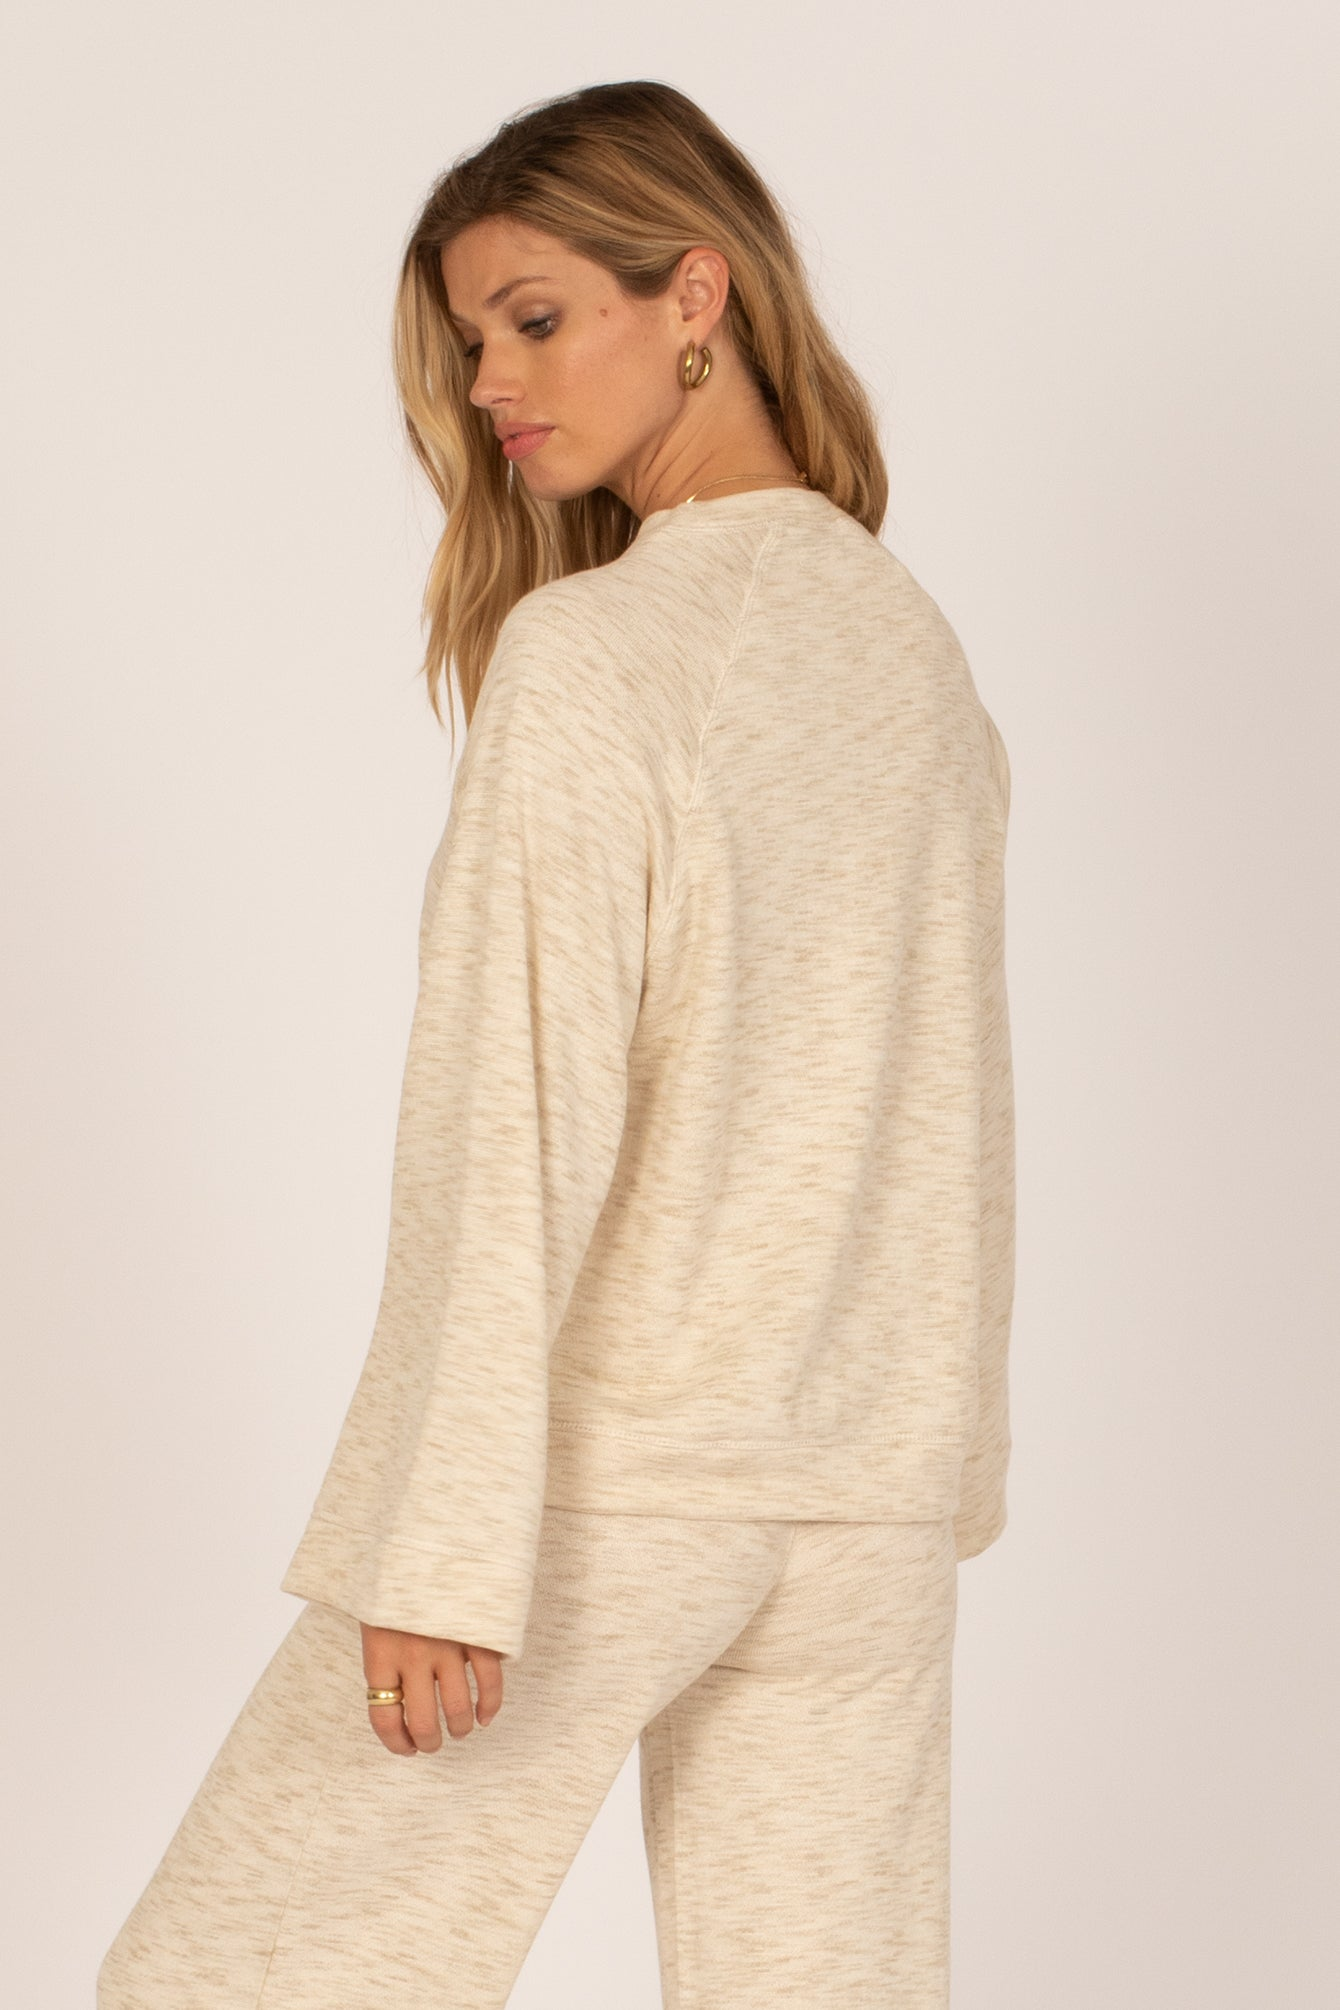 OUT OF OFFICE KNIT PULLOVER